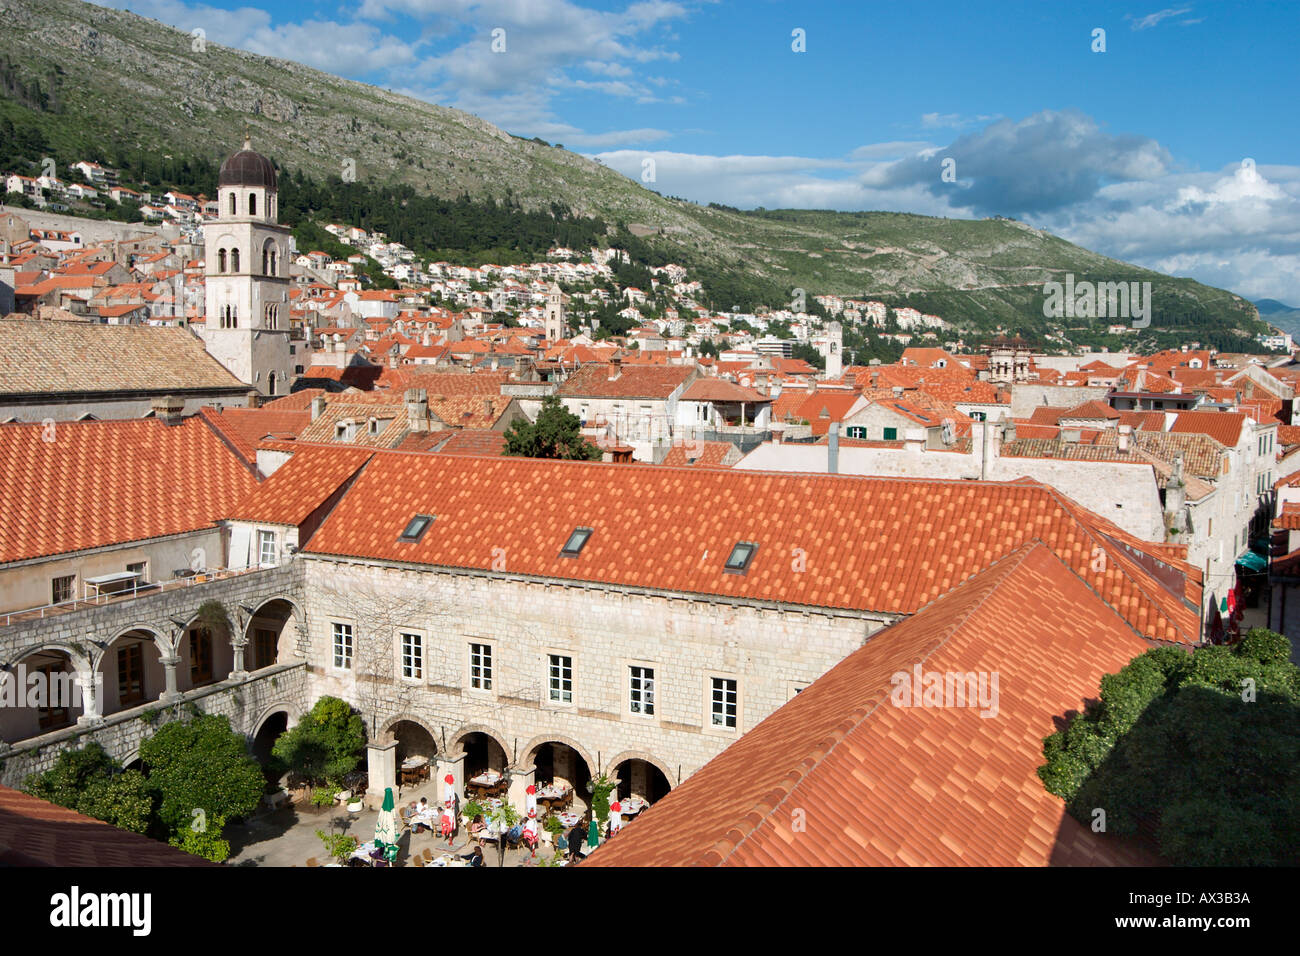 View of the old town from the City Walls, Dubrovnik, Dalmatian Coast, Croatia Stock Photo